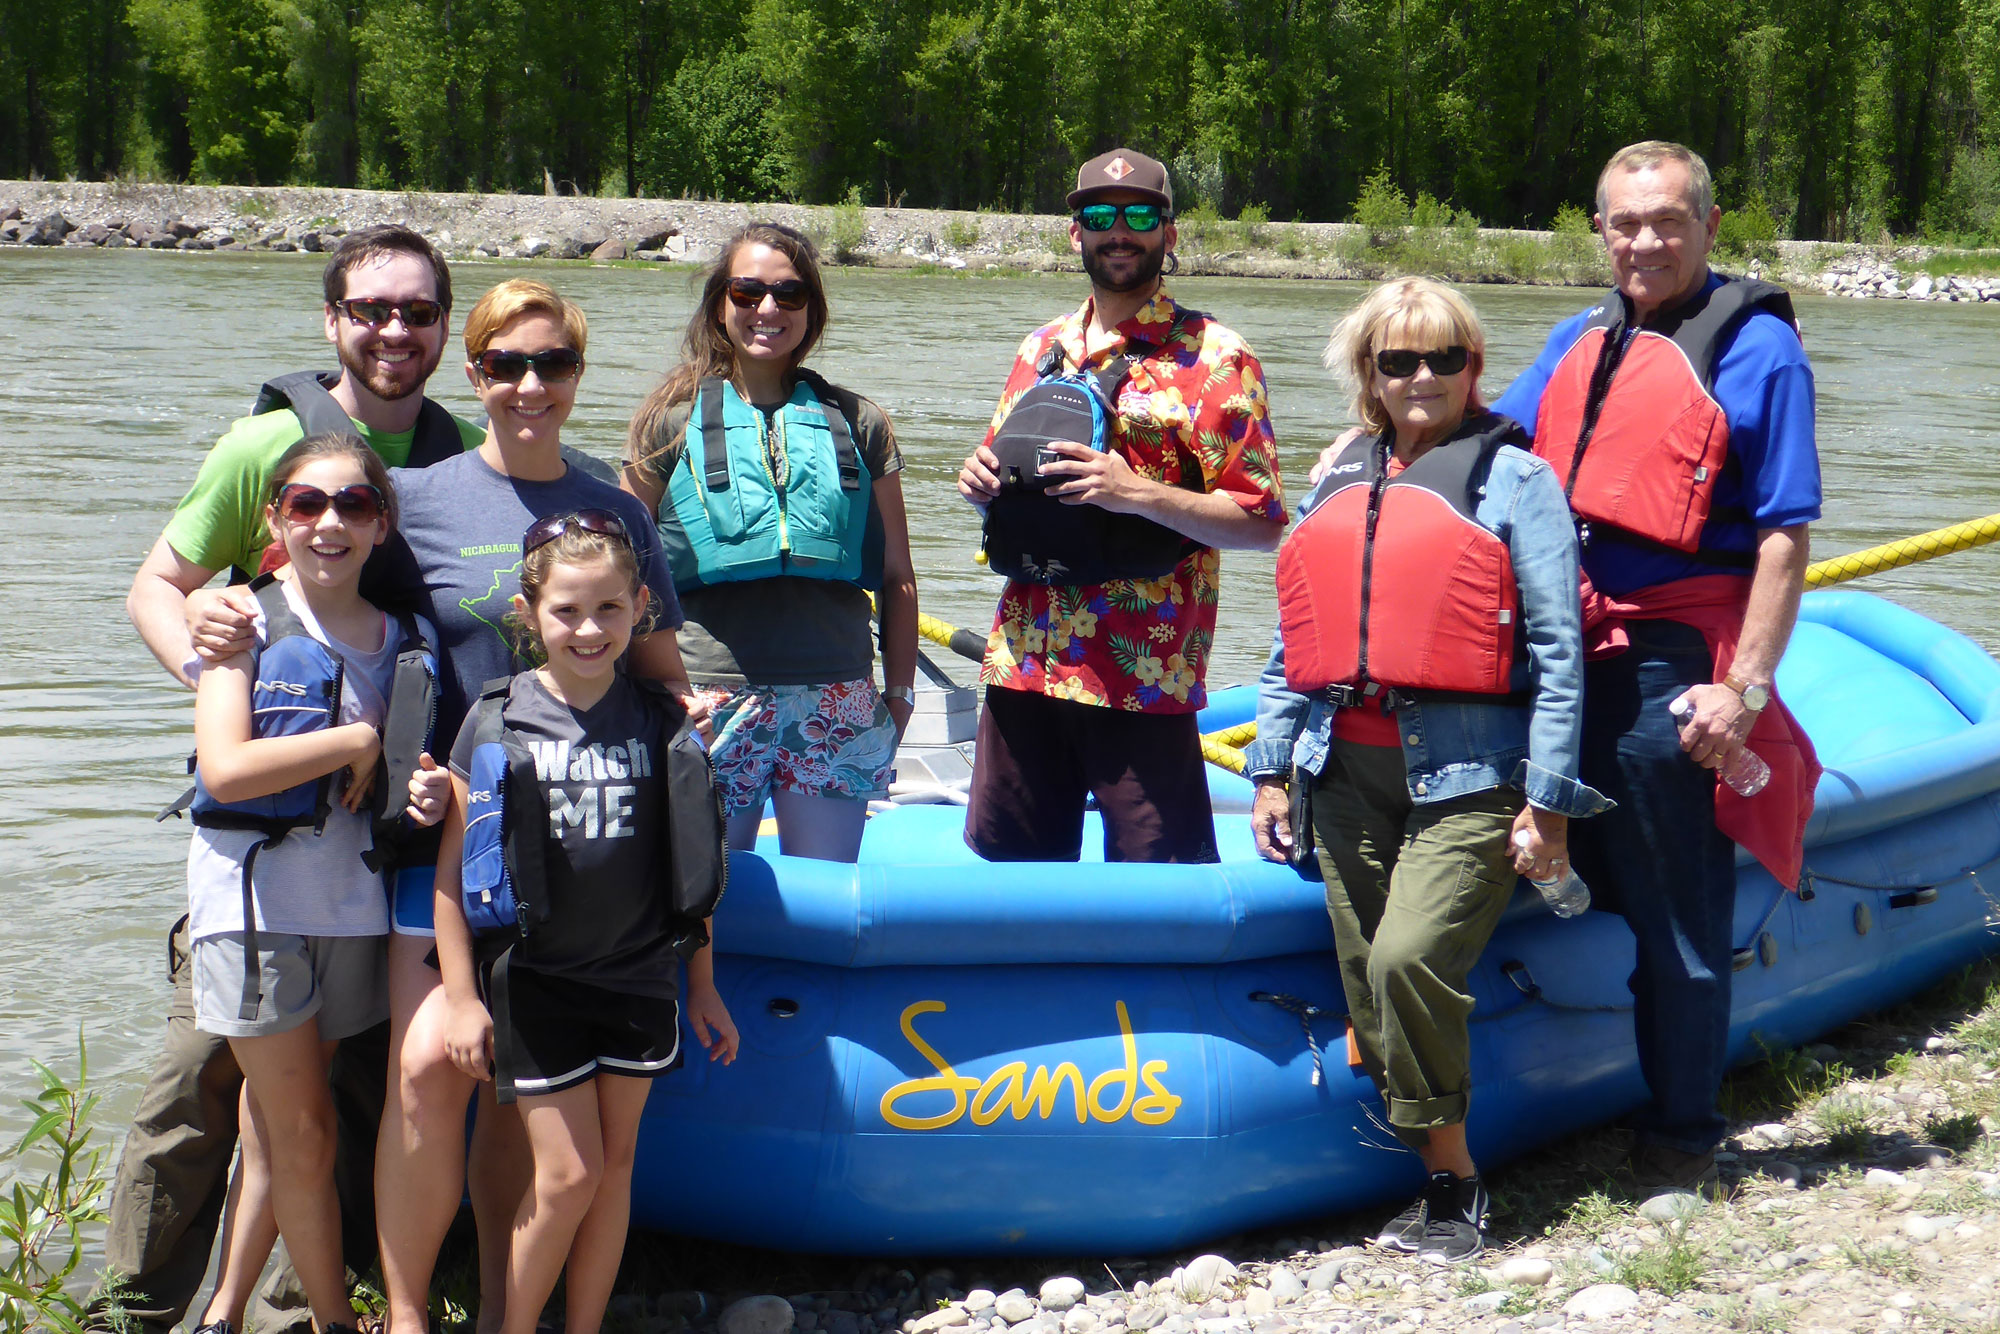 Scenic Rafting group ready to launch